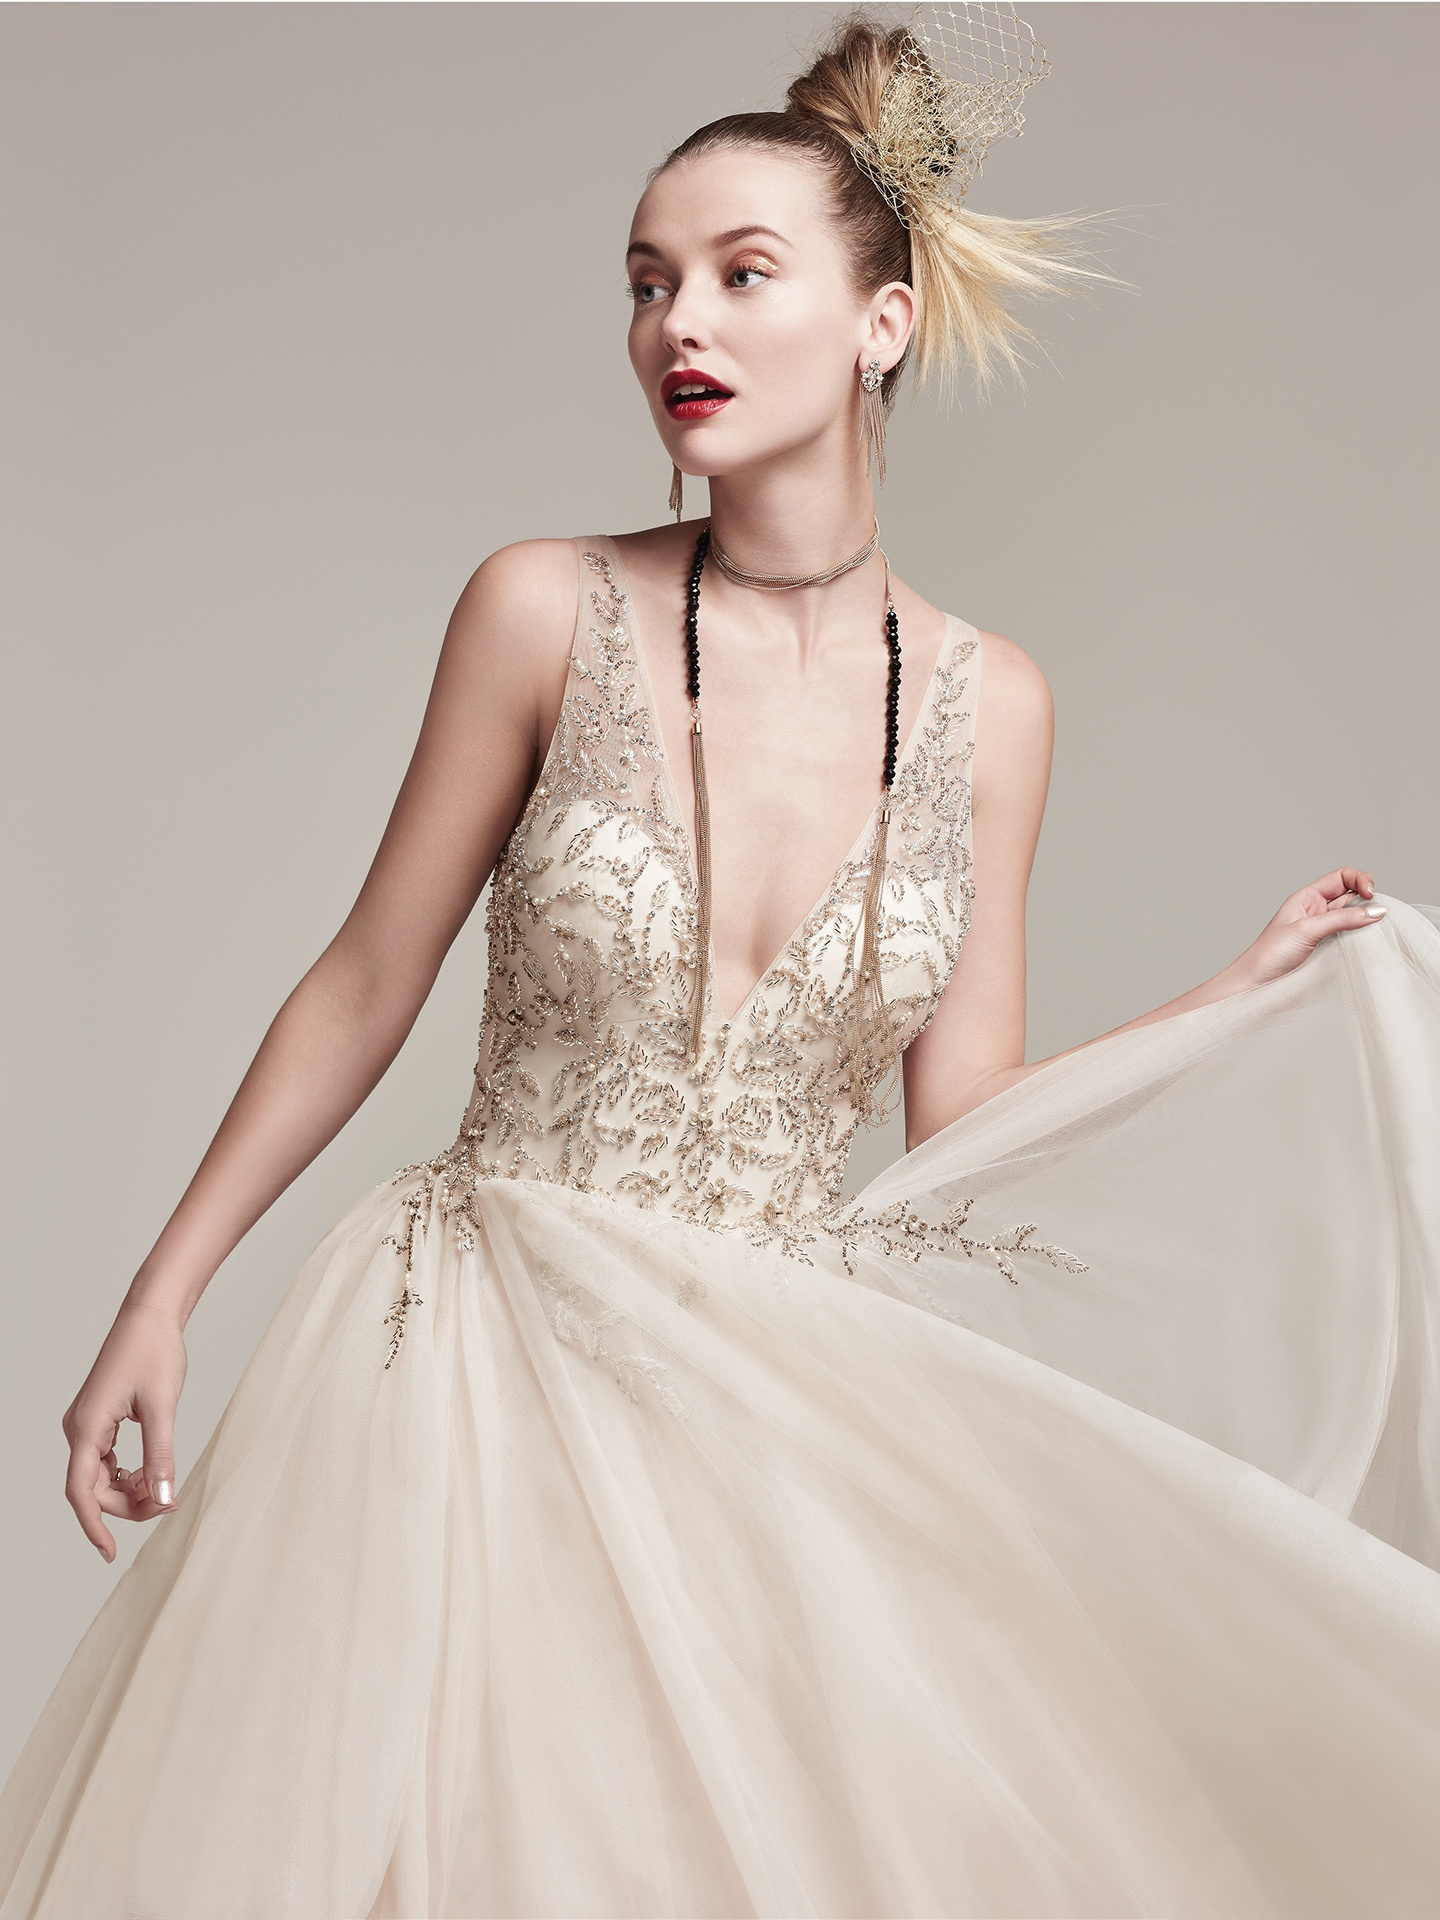 Wedding Inspiration from Every Decade - Maggie Sottero Designs